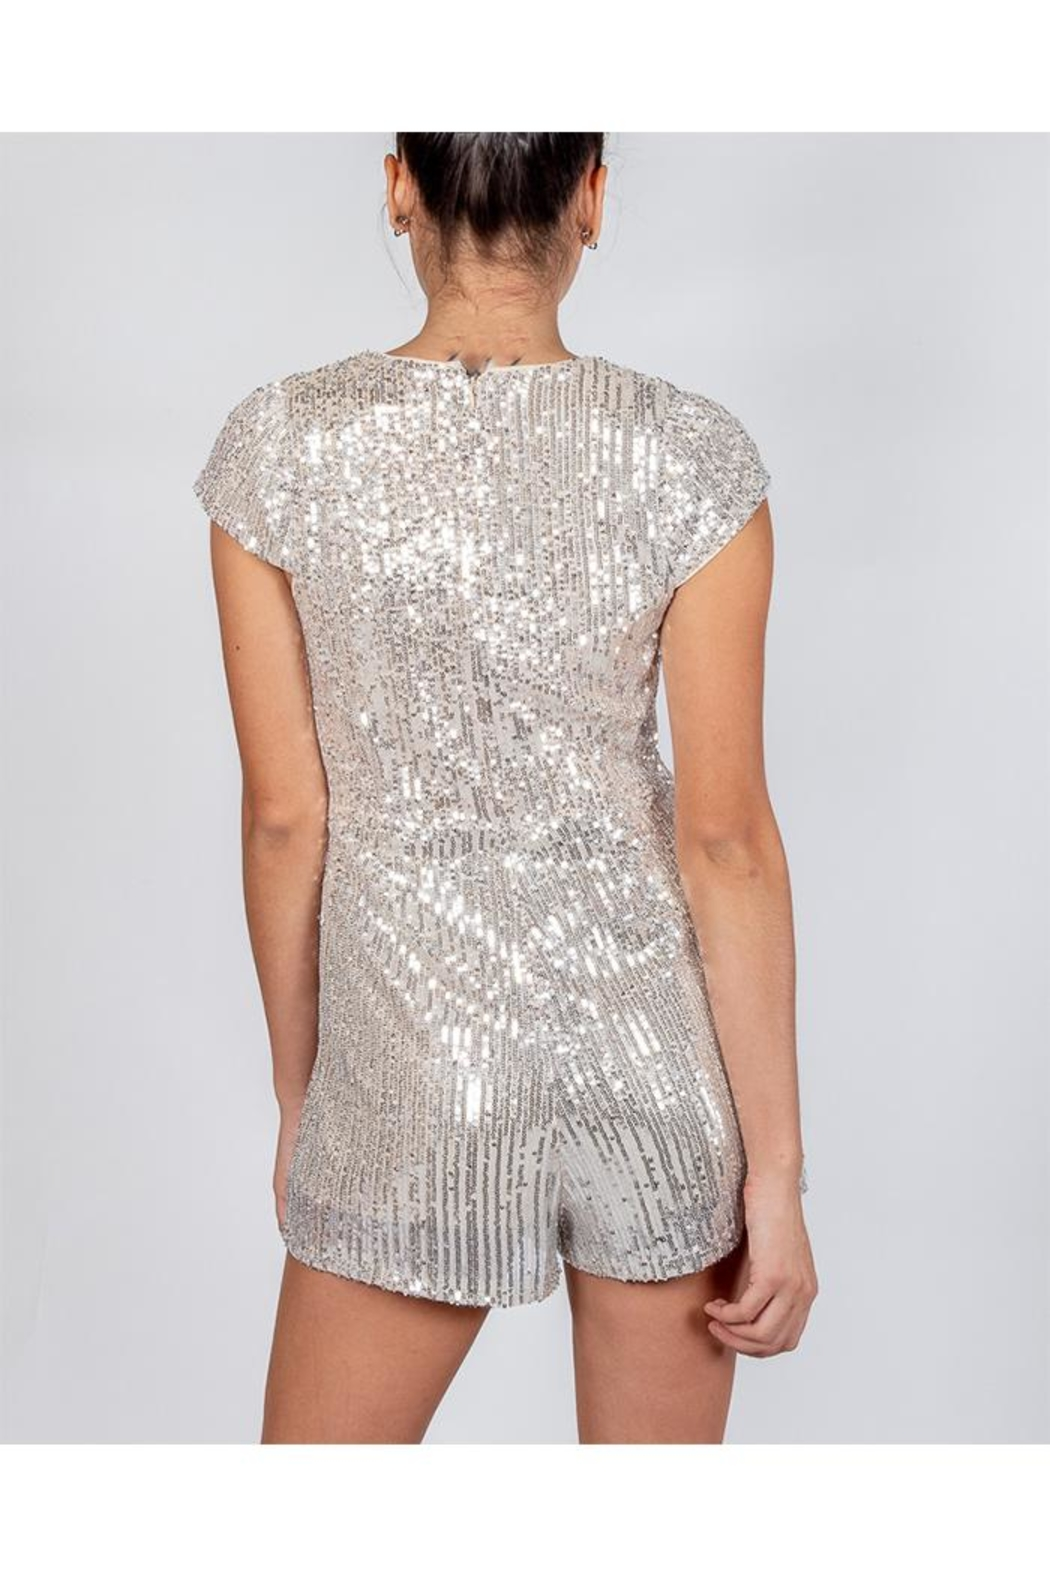 luxxel Silver Sequin Romper - Side Cropped Image